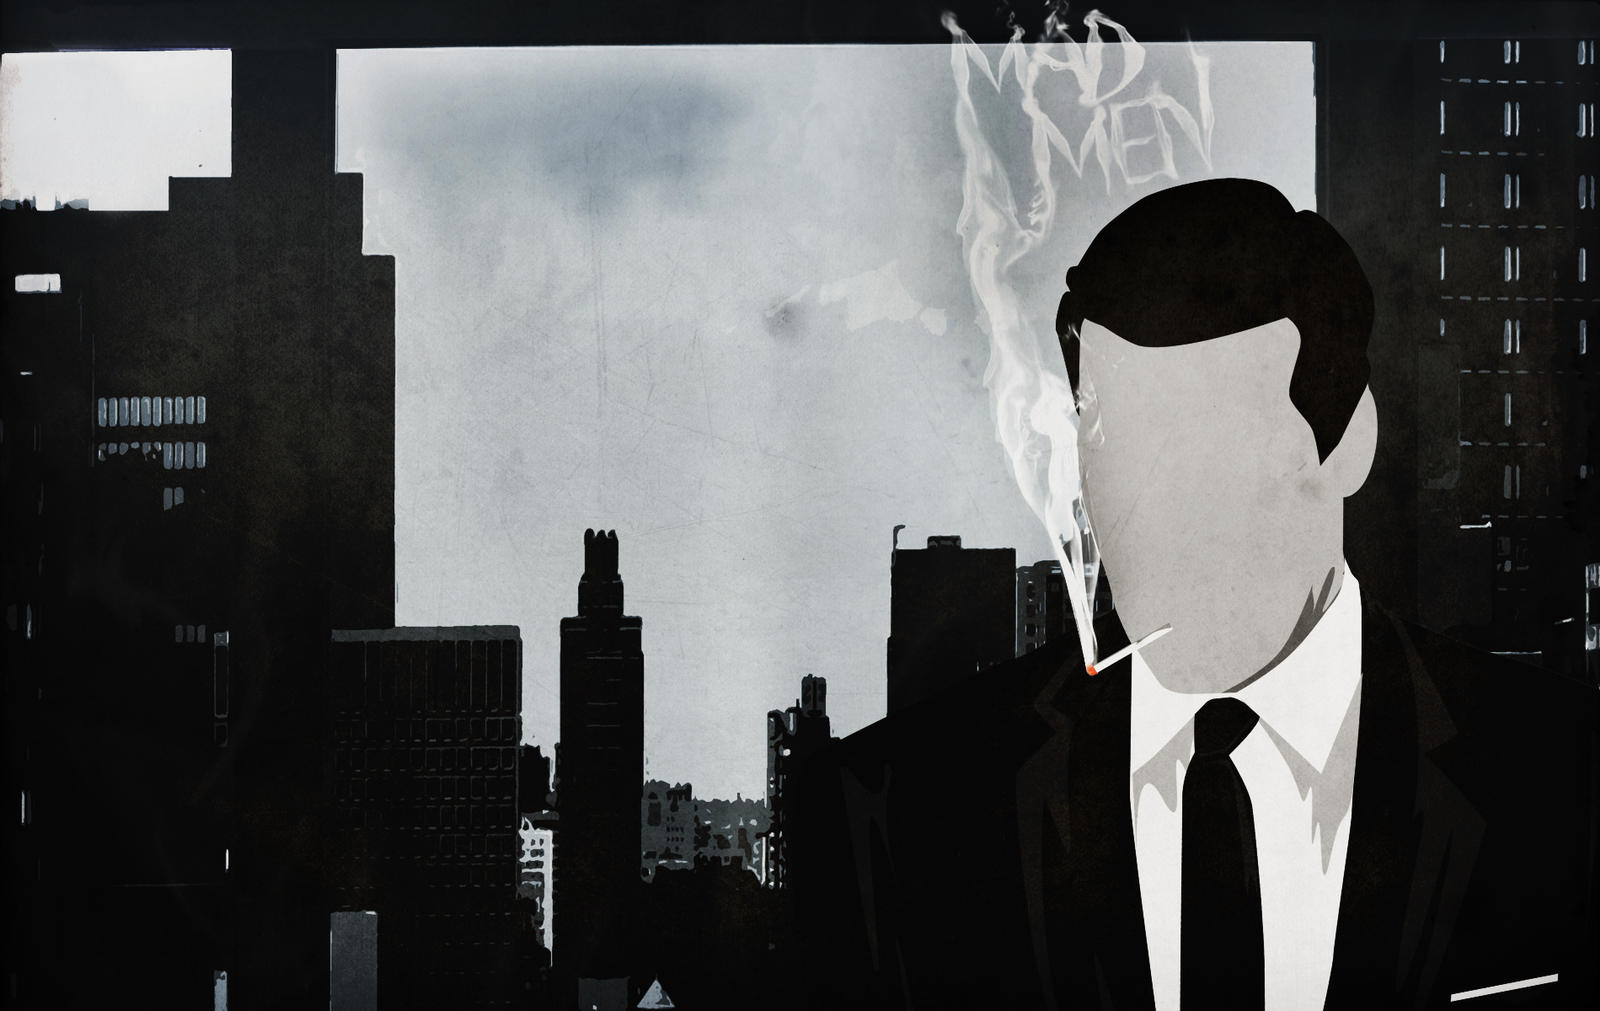 Mad men Wallpaper by LillGrafo